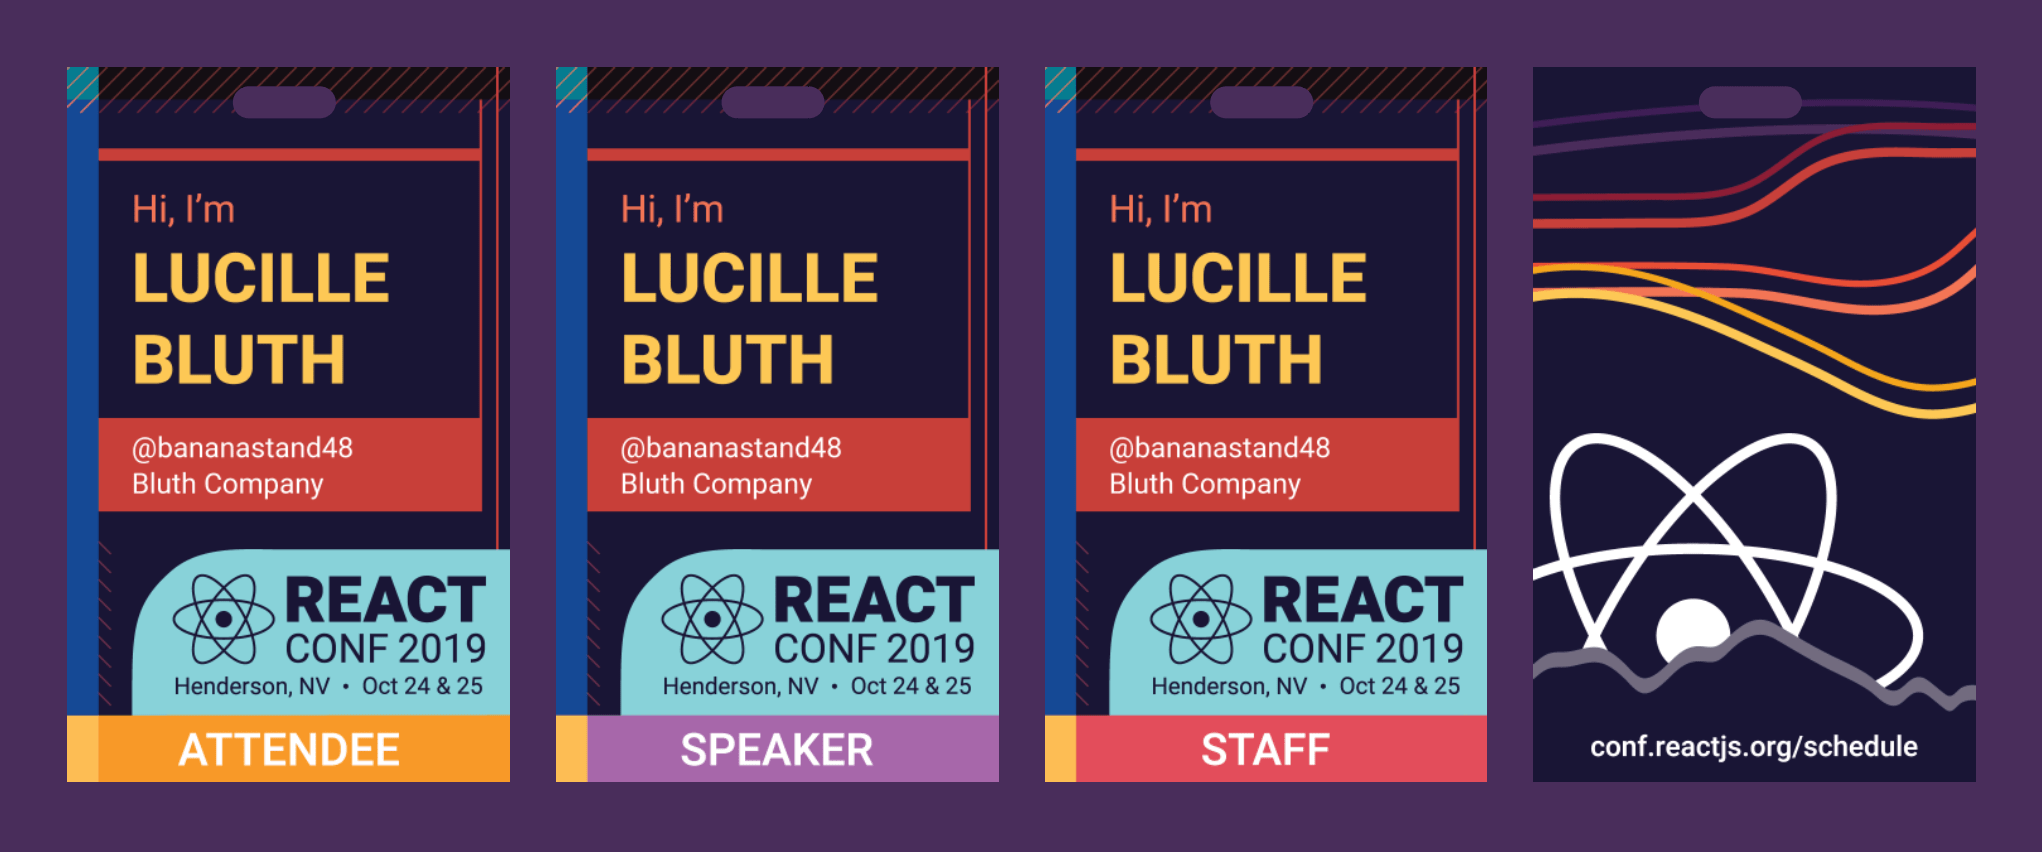 Screenshot of the React Conf 2019 badge designs